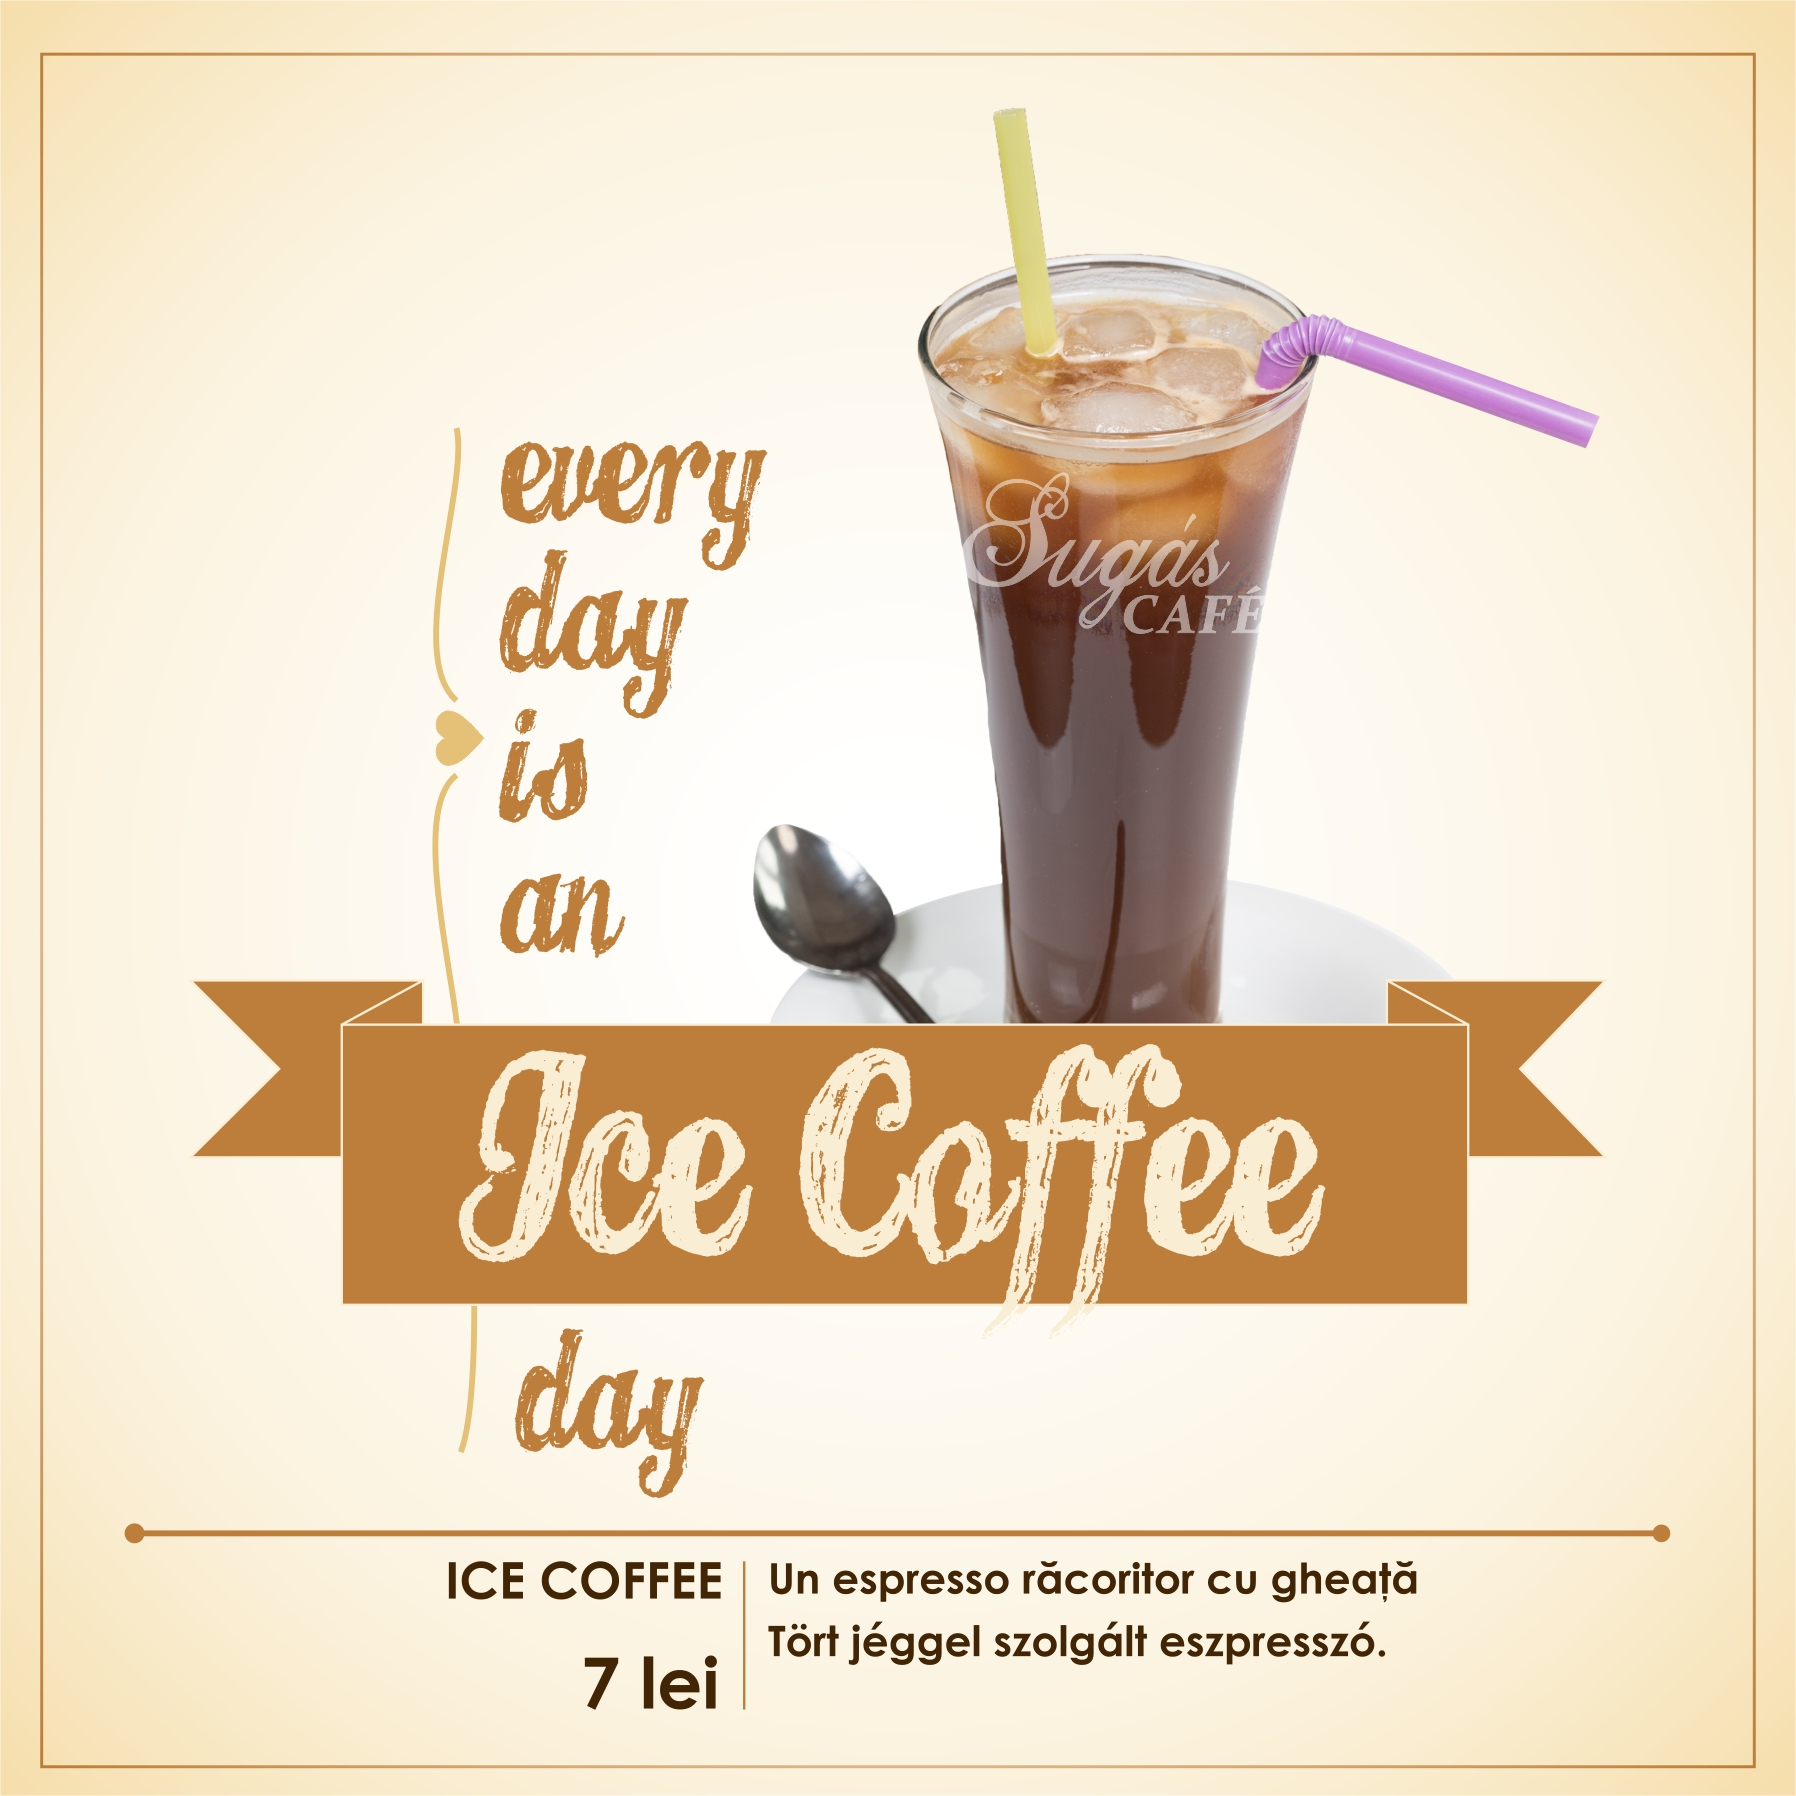 Sugas Cafe menu ICE COFFEE